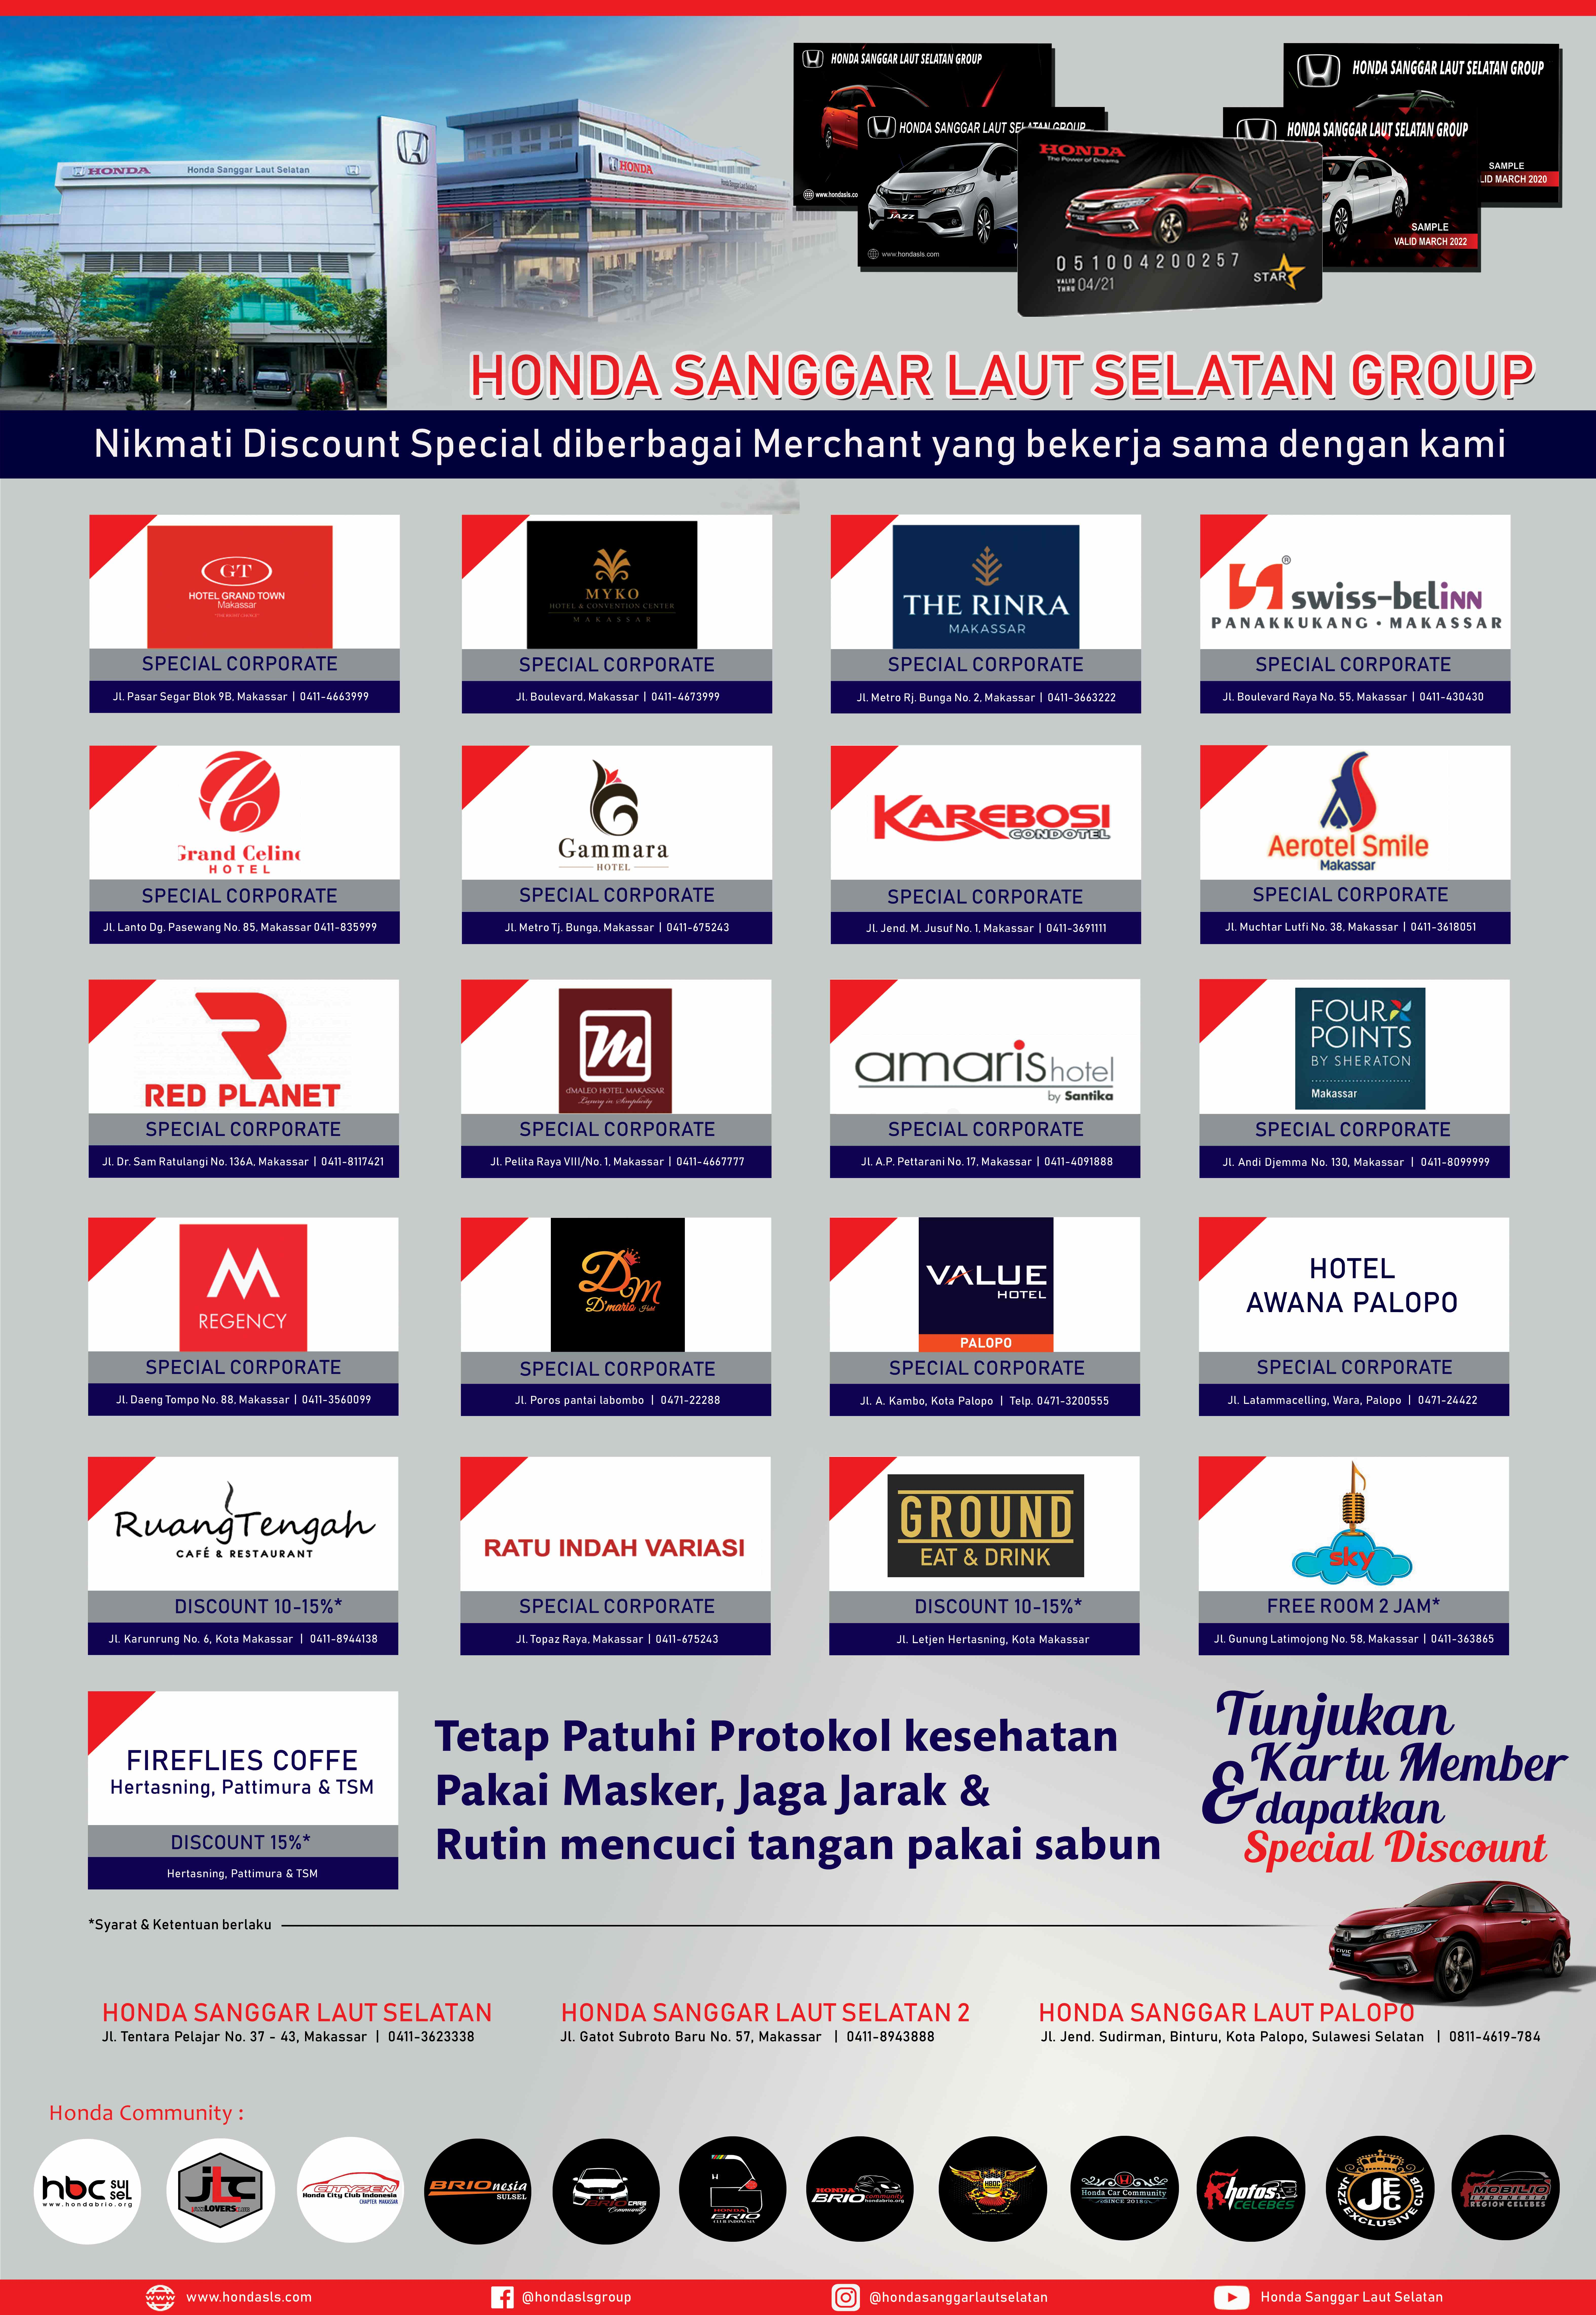 Diskon Outlet/Merchant Khusus member Honda SLS Group